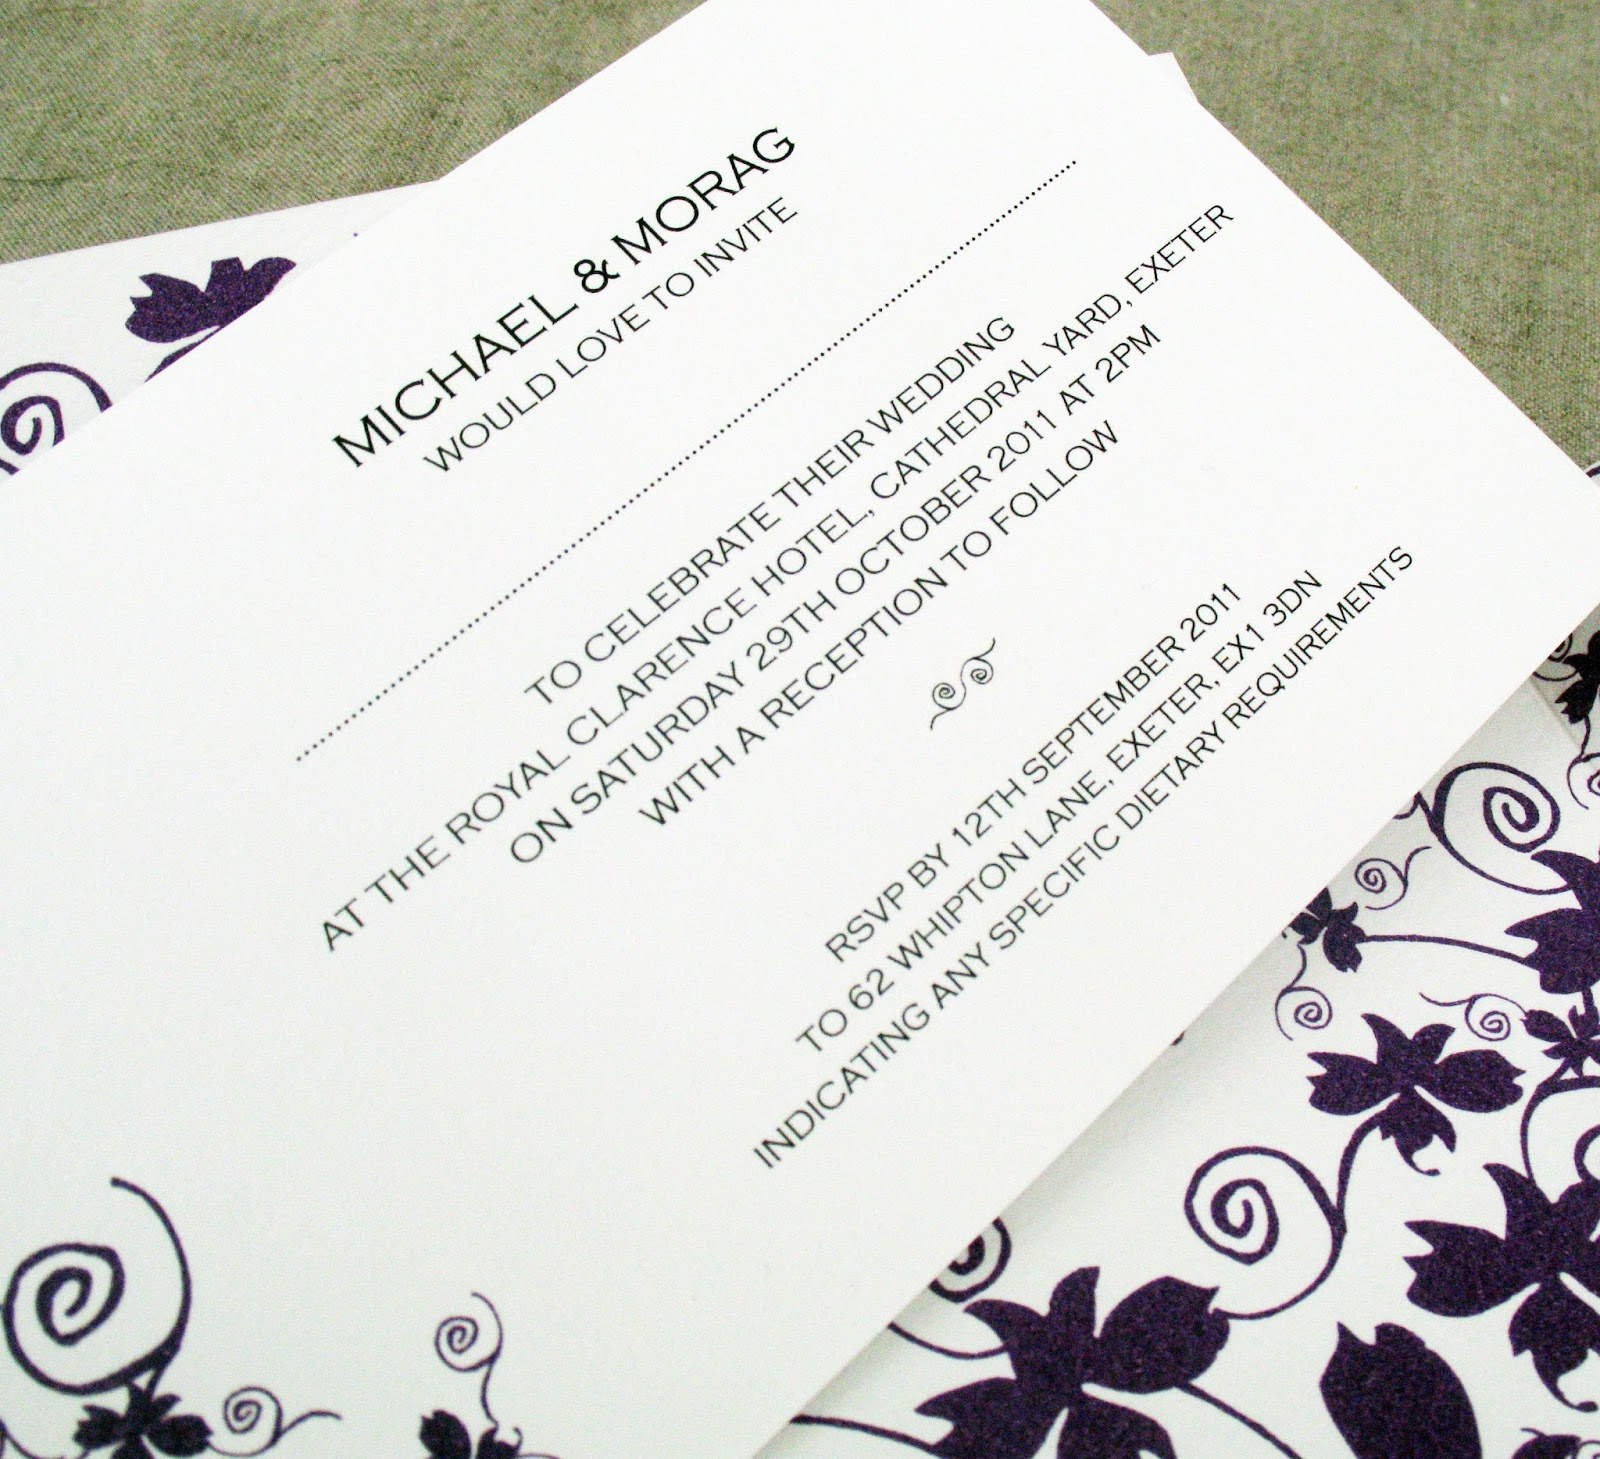 Inspiration for weddings invitations and stationery september 2013 request the pleasure of your company at their marriage at ceremony details on day date month year at time and afterwards at reception details stopboris Choice Image